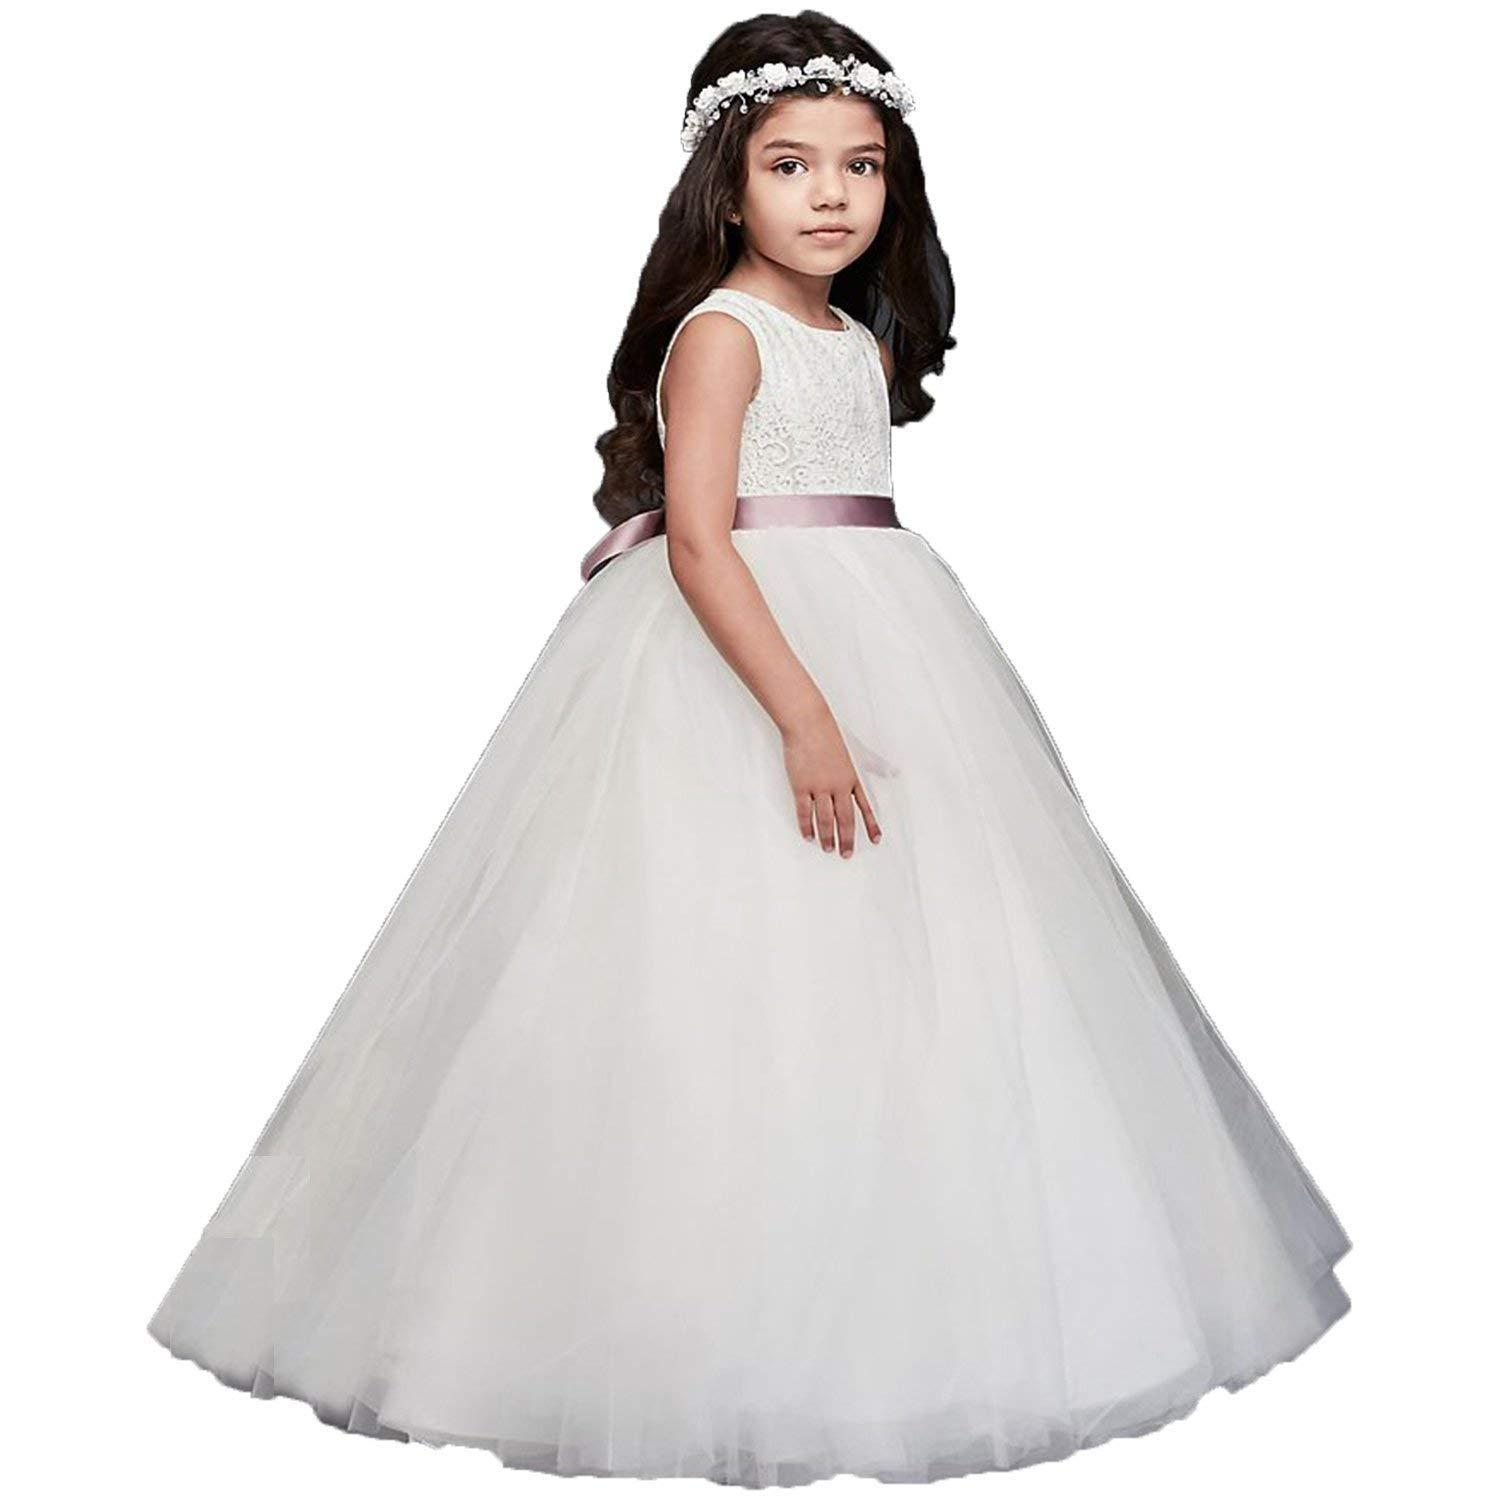 81533dbdc9a7d Ivory Fancy Lace Flower Girl Dress with Heart Cutout On Back 2-14 Years Old  Girl Bridesmaid Dress Communion